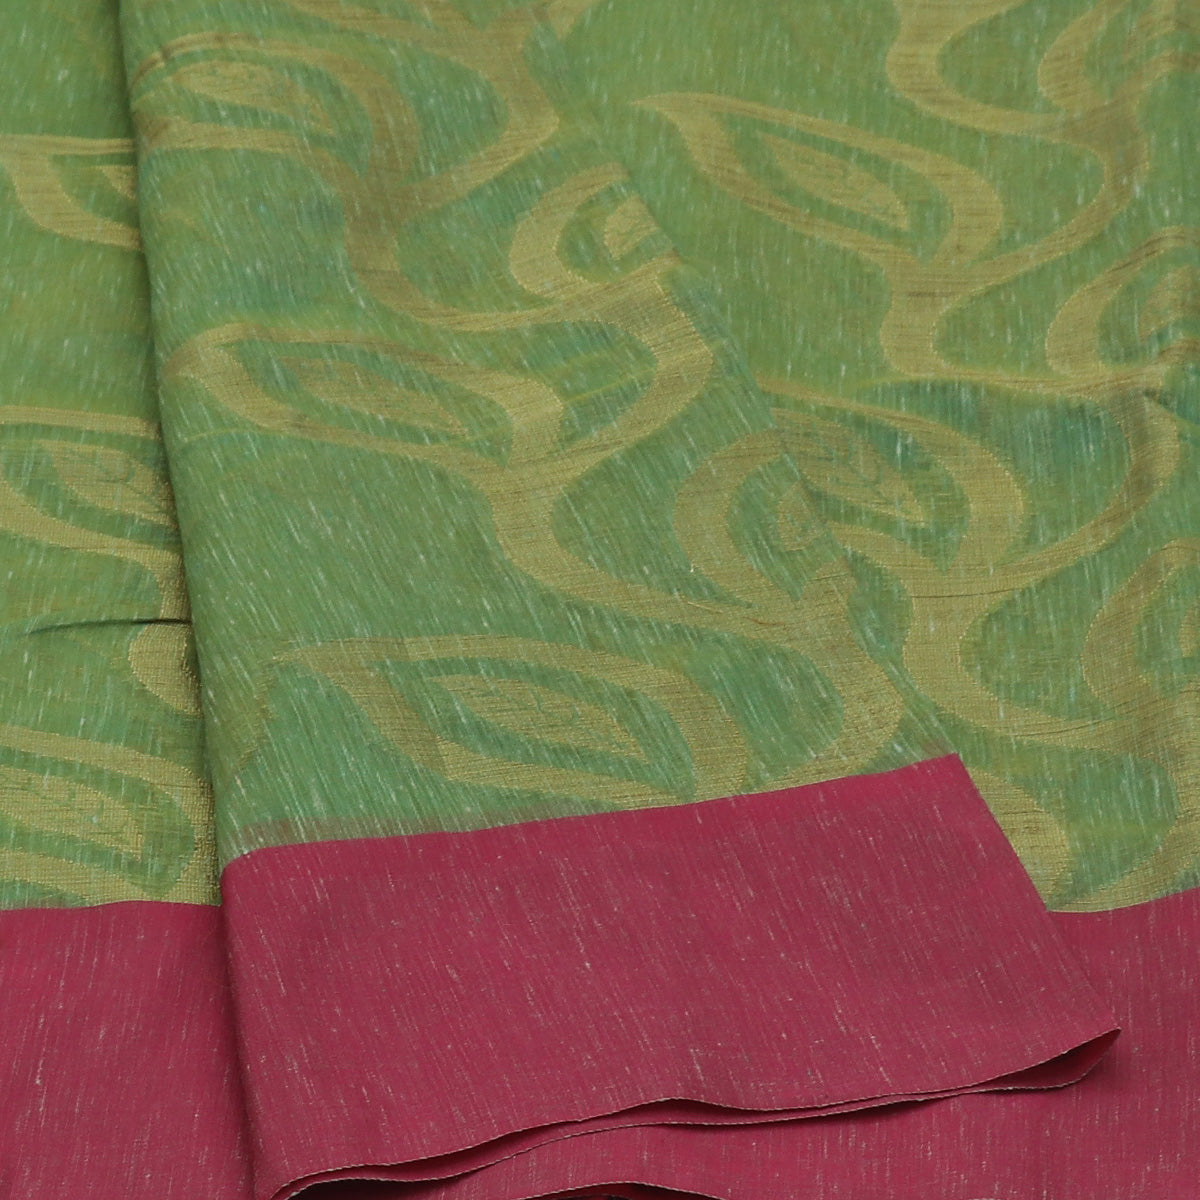 Jute Linen Saree Fern Green and Pink with Simple border